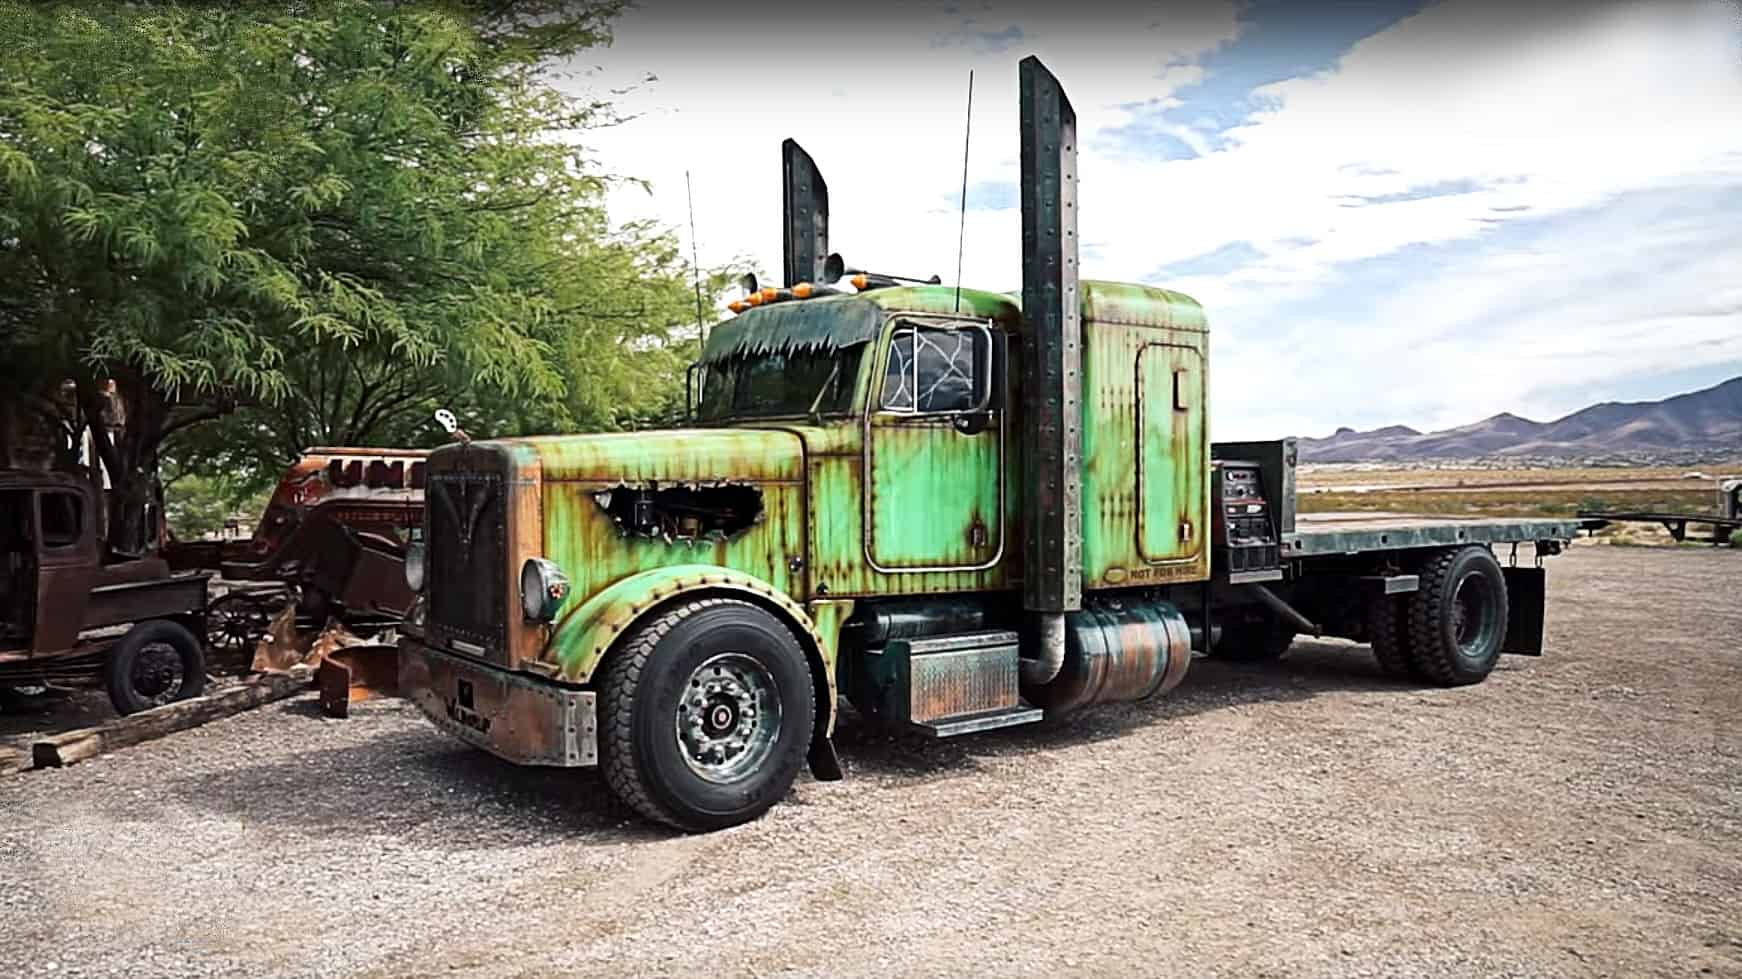 WelderUp's Insane Custom Turbo Diesel Peterbilt